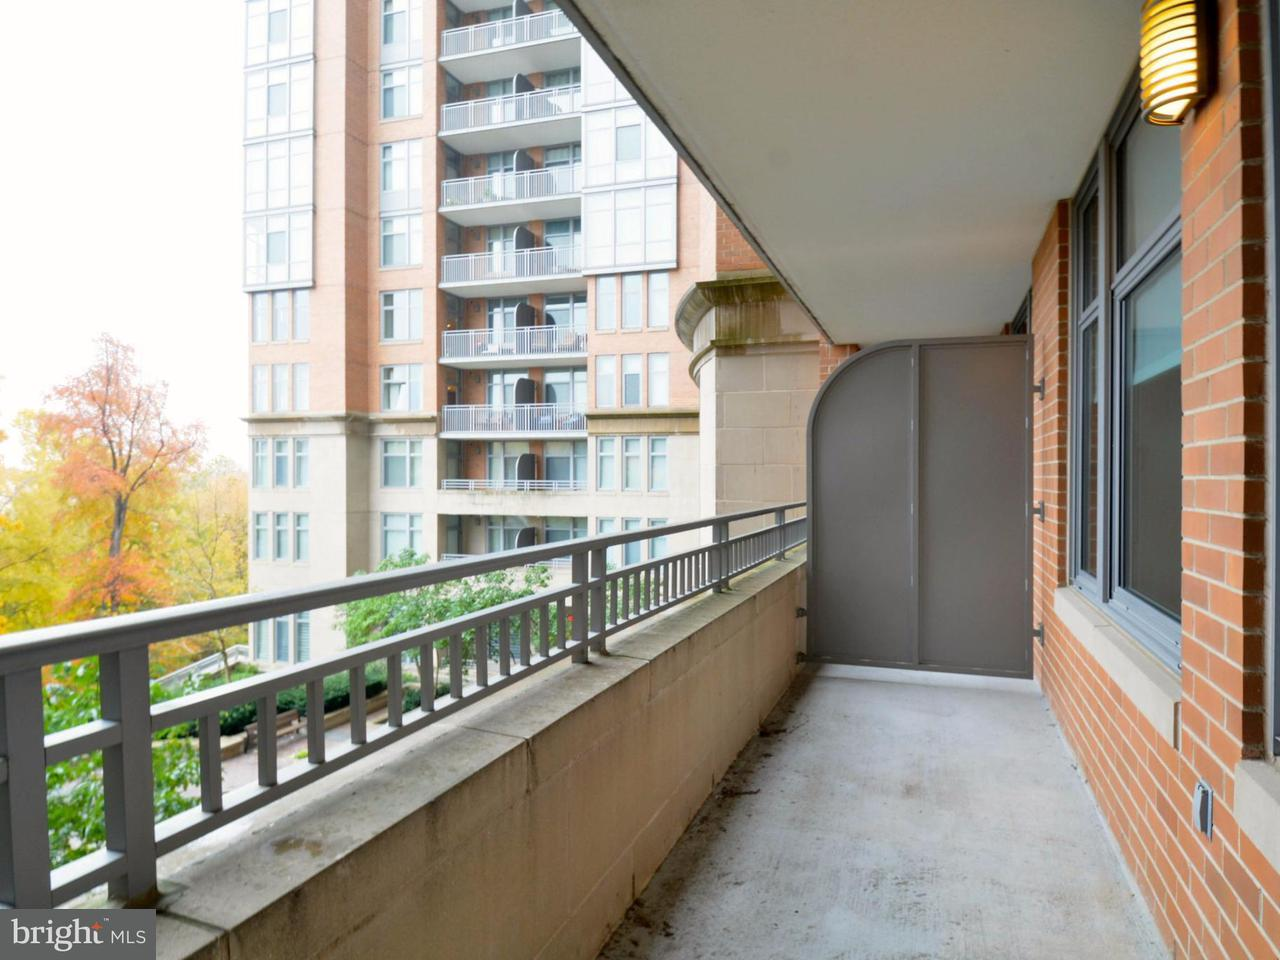 Additional photo for property listing at 8220 Crestwood Heights Dr #303 8220 Crestwood Heights Dr #303 McLean, Virginia 22102 United States